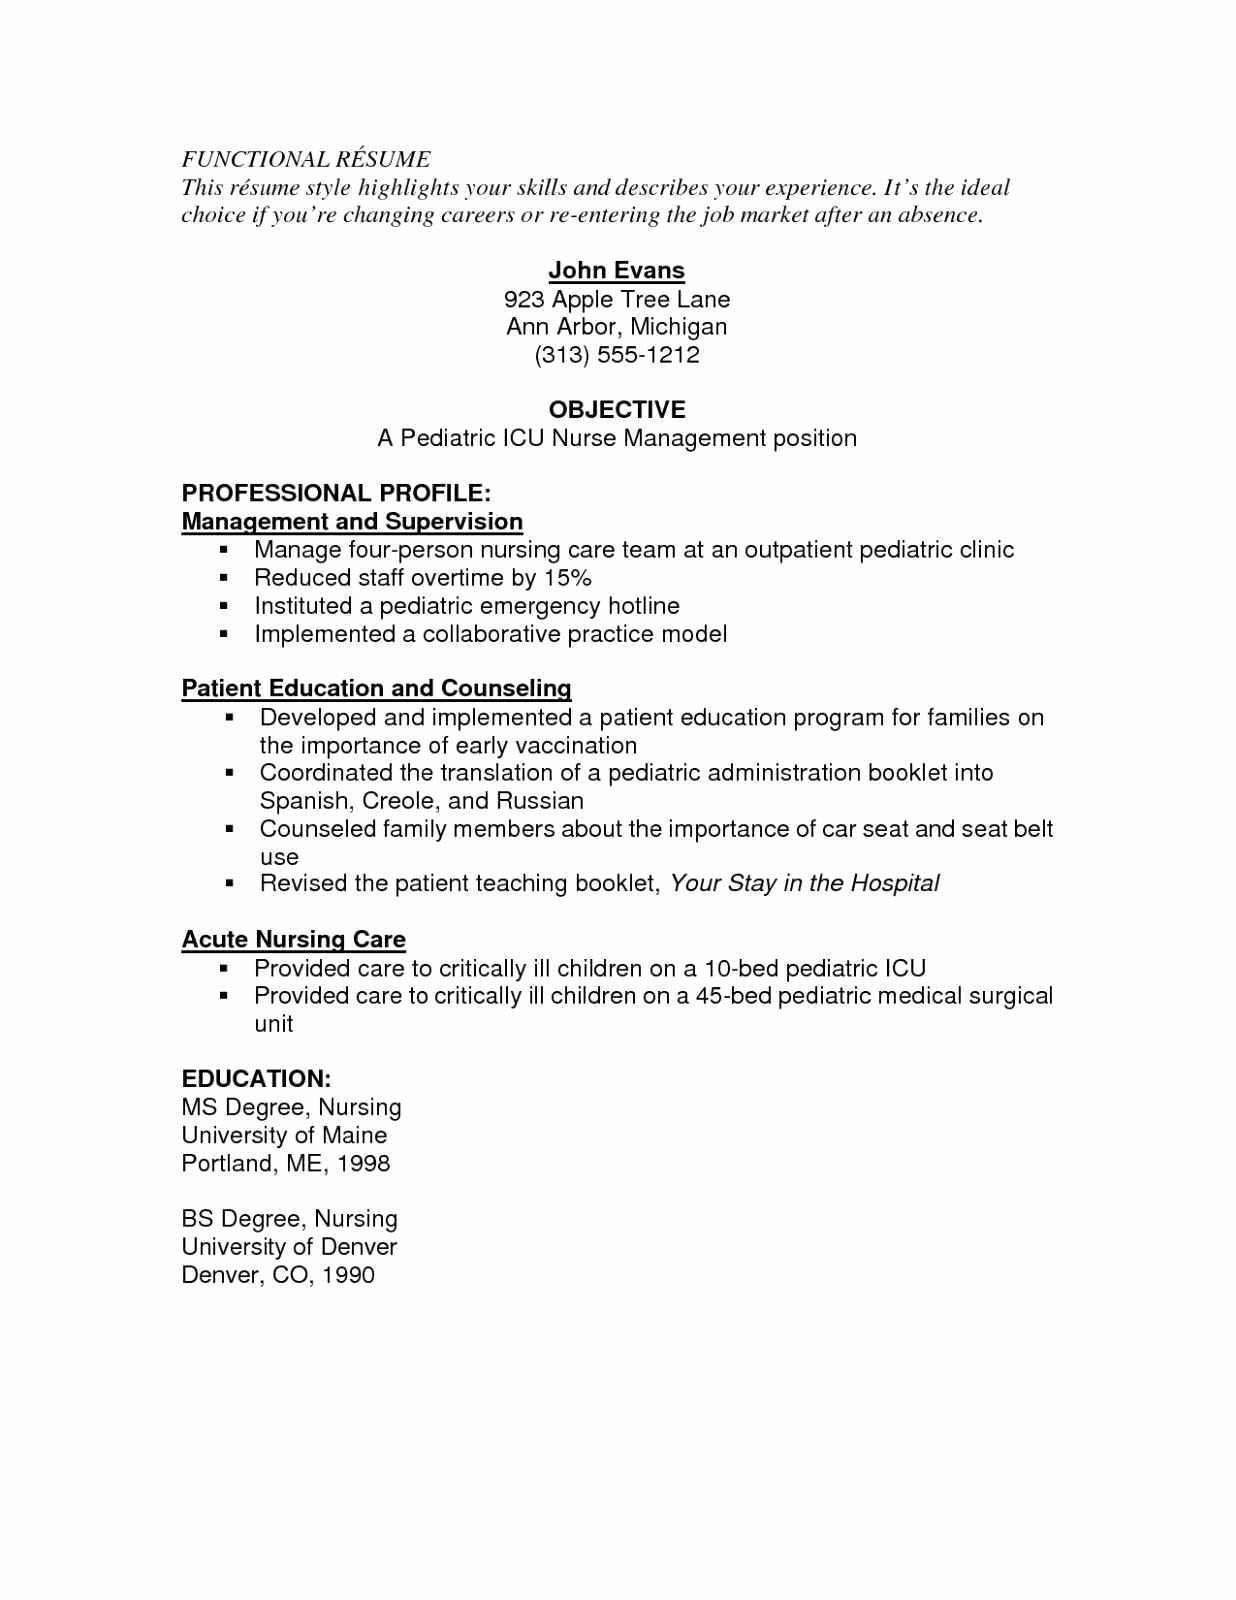 Nursing Skills for Resume Beautiful Rn Resume Skills New